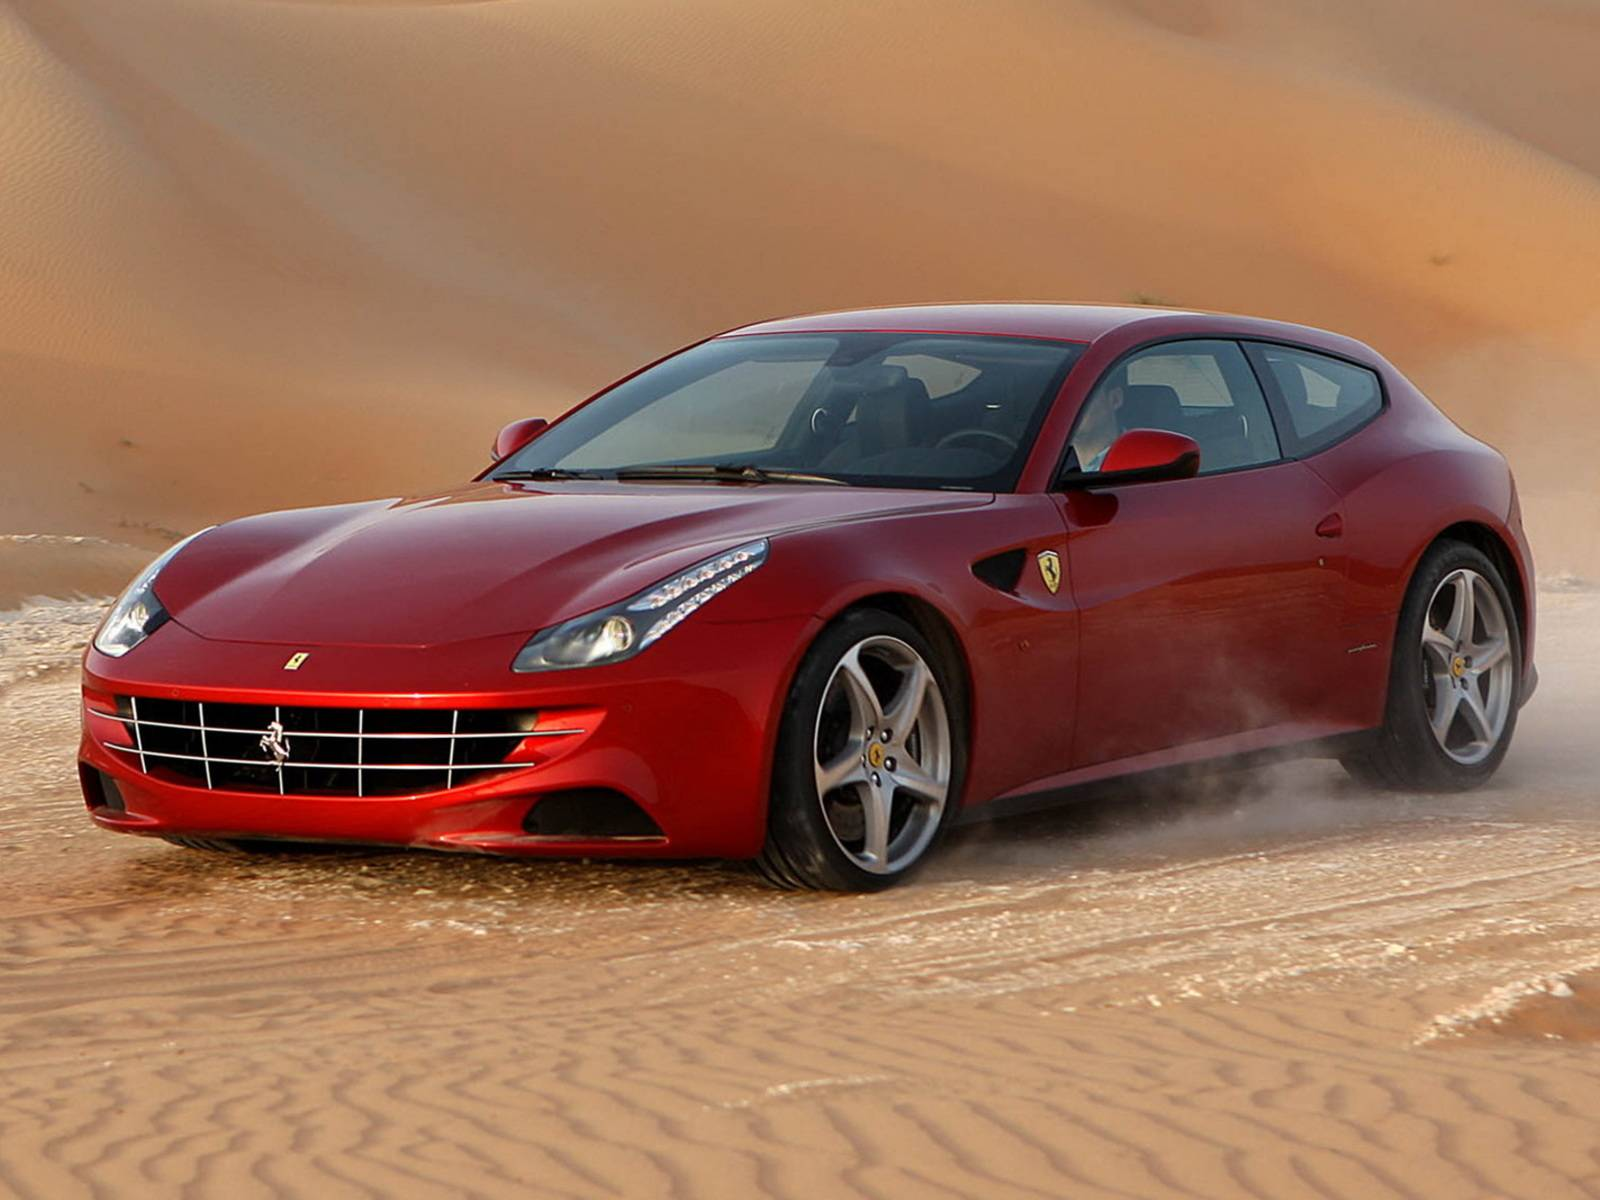 ferrari_ff_shooting_brake_0-100_1